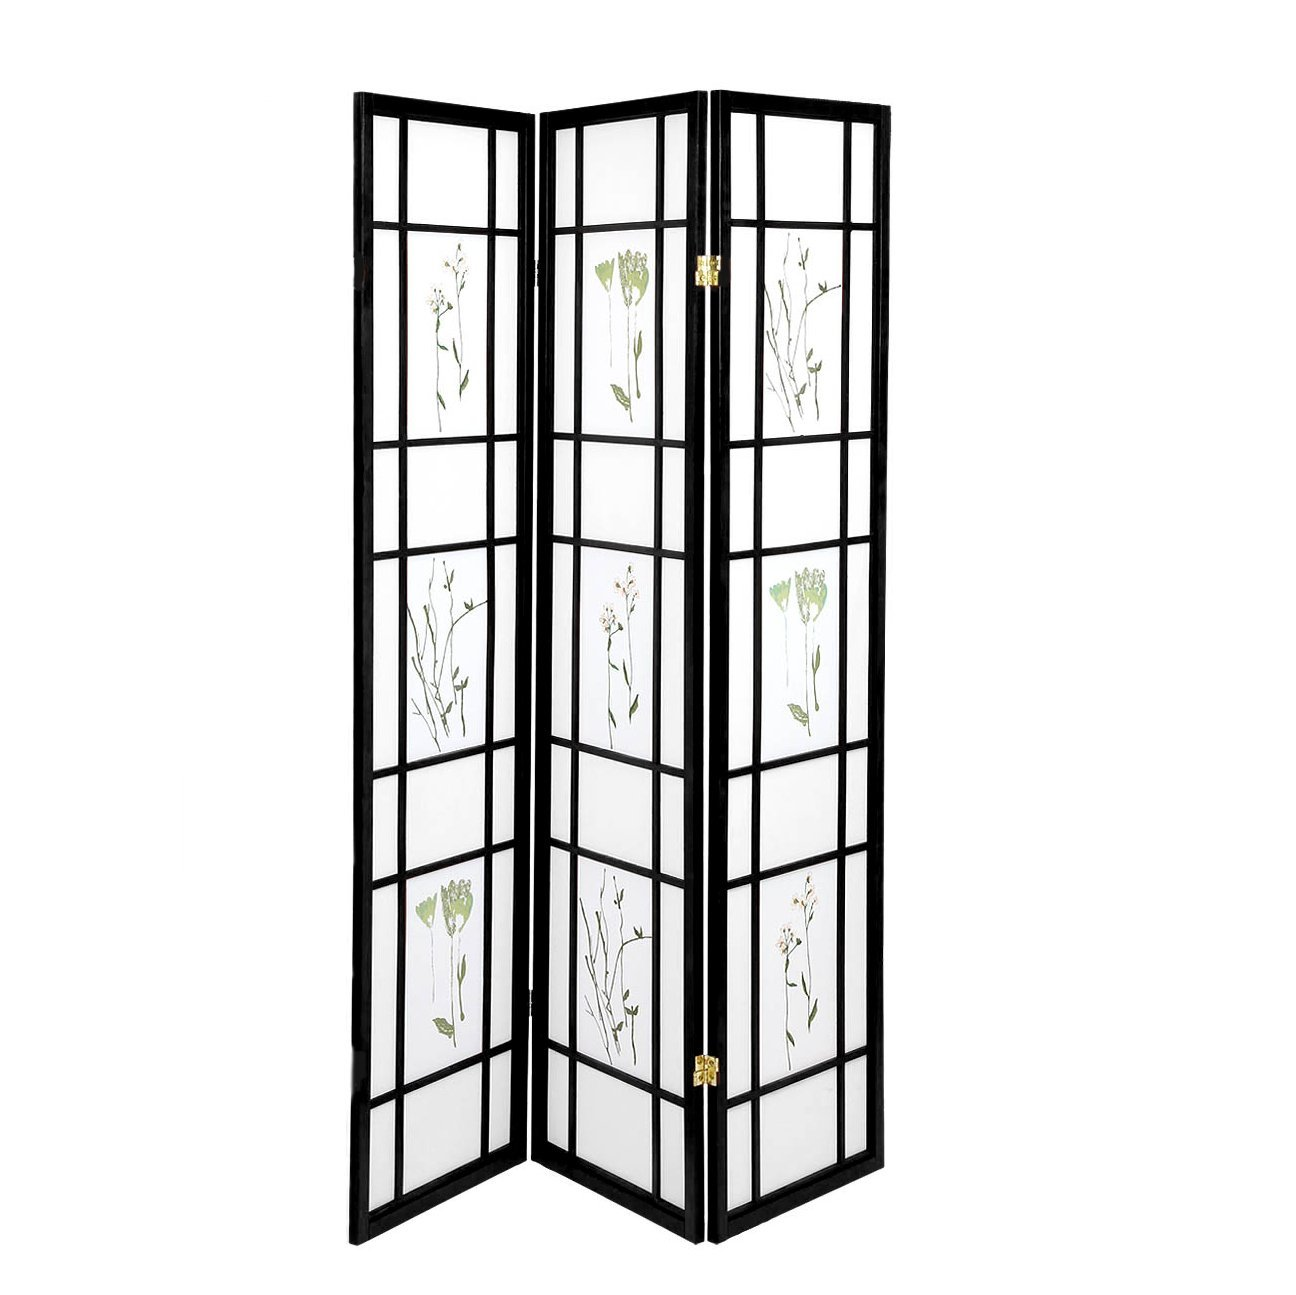 High Quality Oriental Room Divider Hardwood Shoji Screen (Floral Print-Black, 3-Panel)